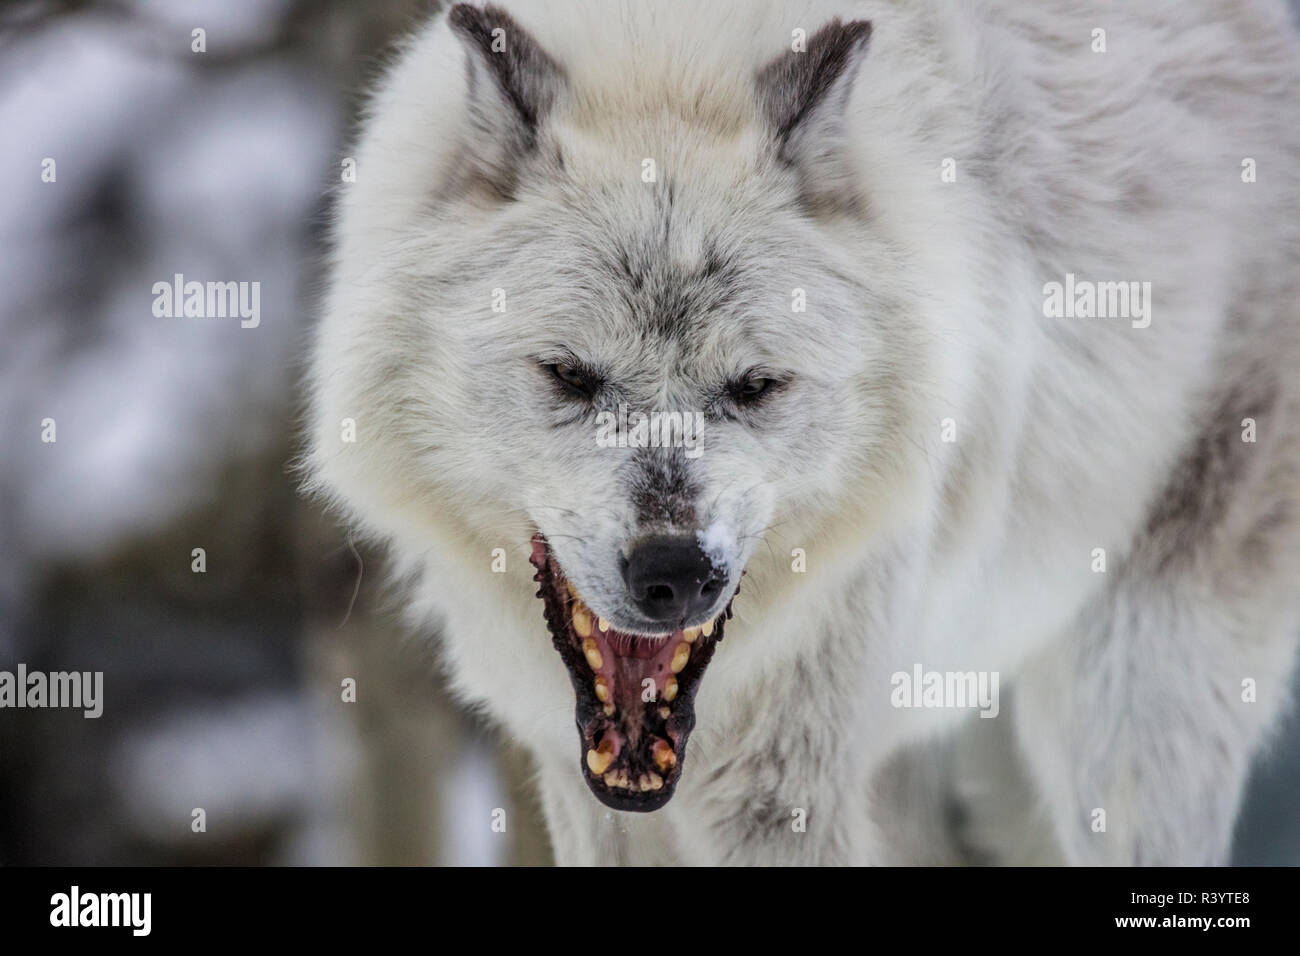 Captive gray wolf portrait at the Grizzly and Wolf Discovery Center in West Yellowstone, Montana, USA - Stock Image